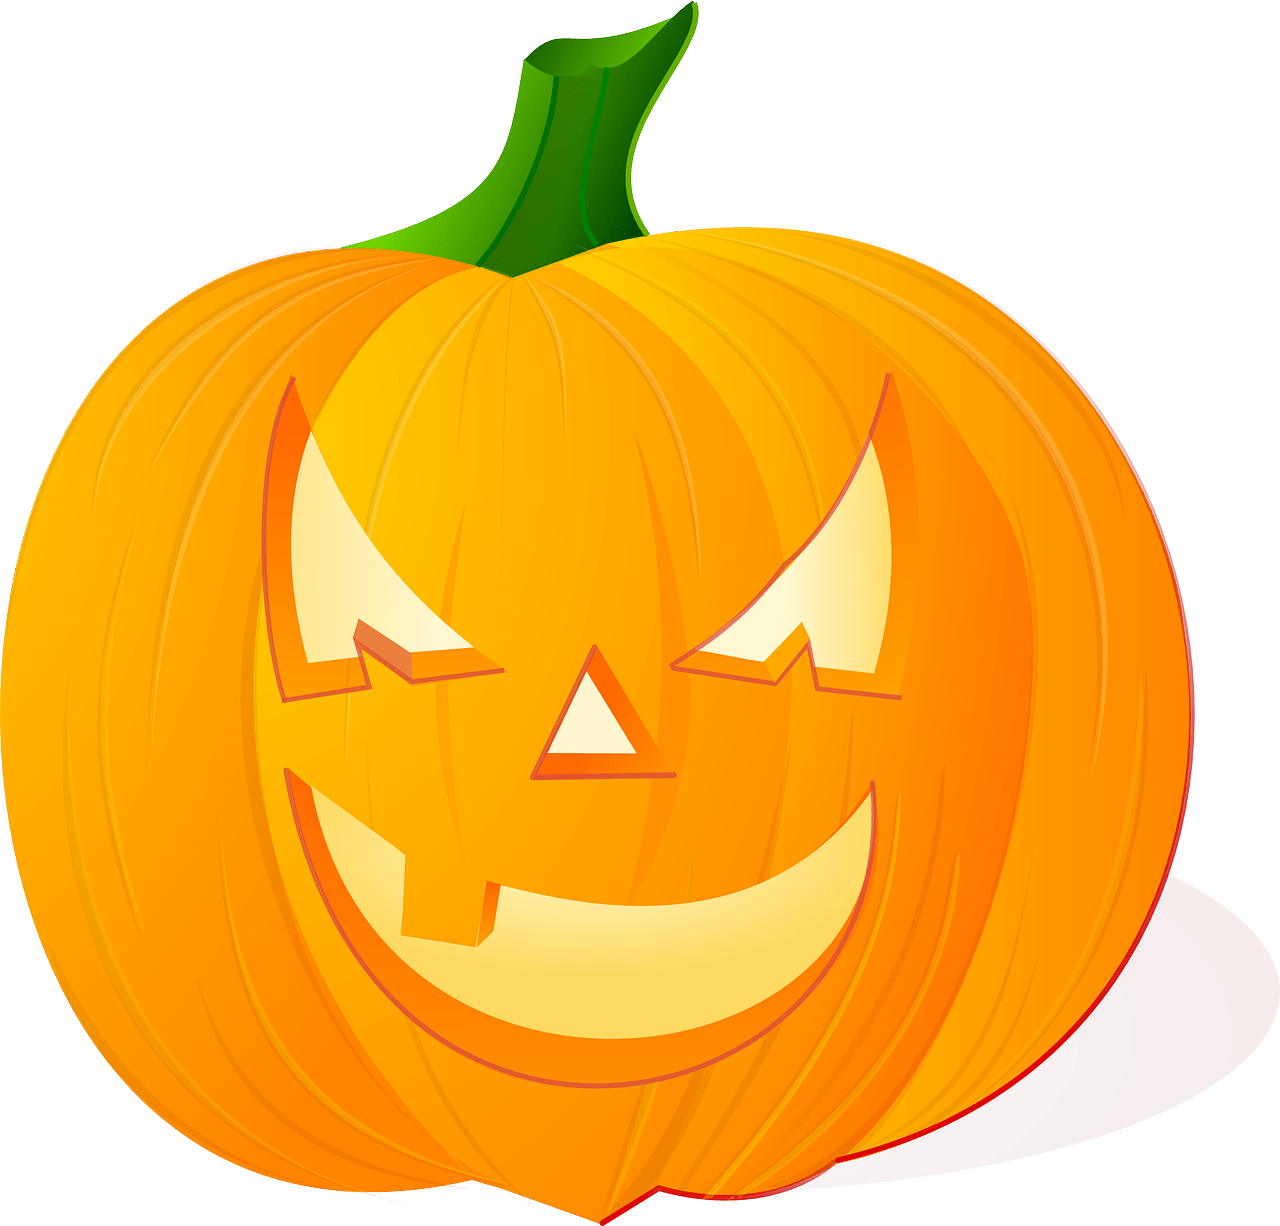 More Teaching Resources About Halloween & Day Of The Dead